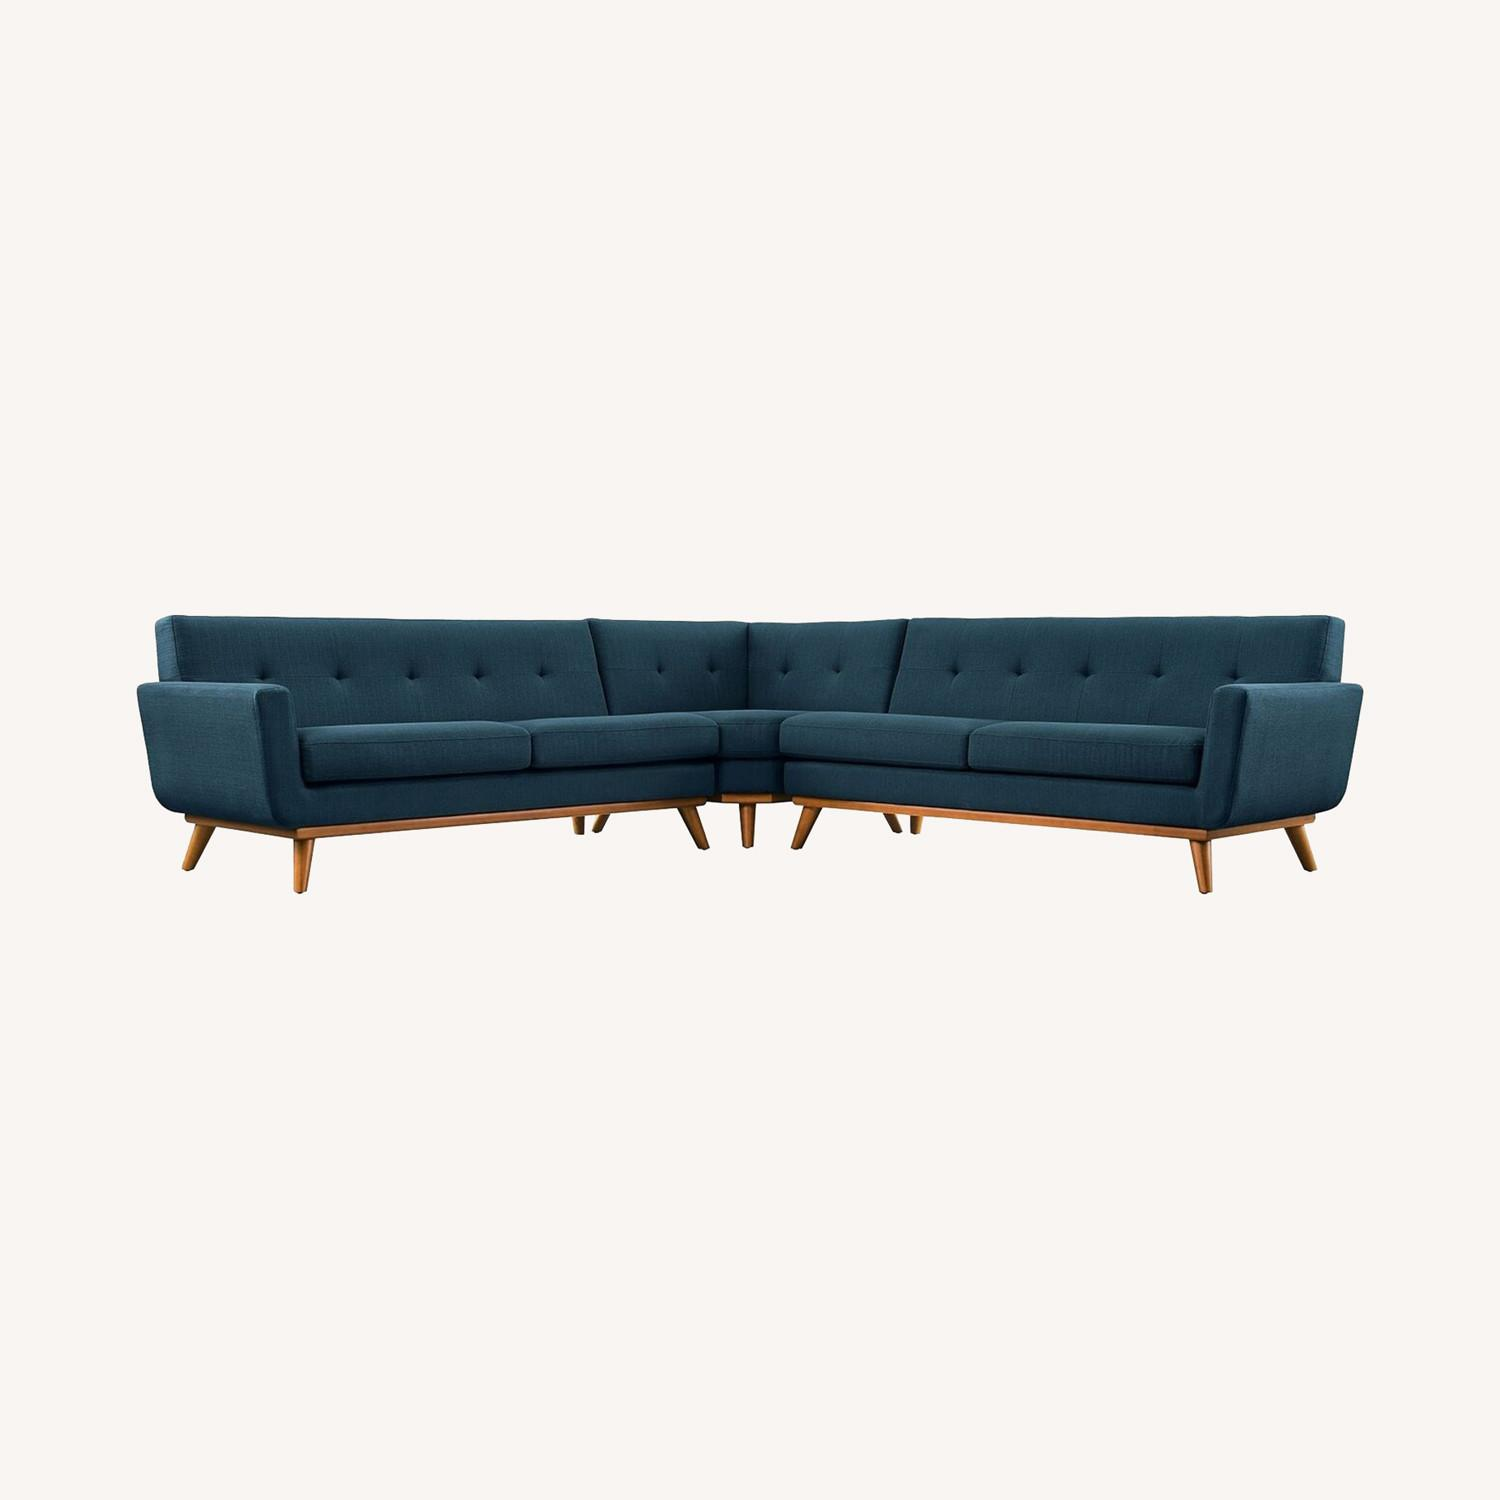 3-Piece L-Shaped Sectional In Azure Upholstery - image-7